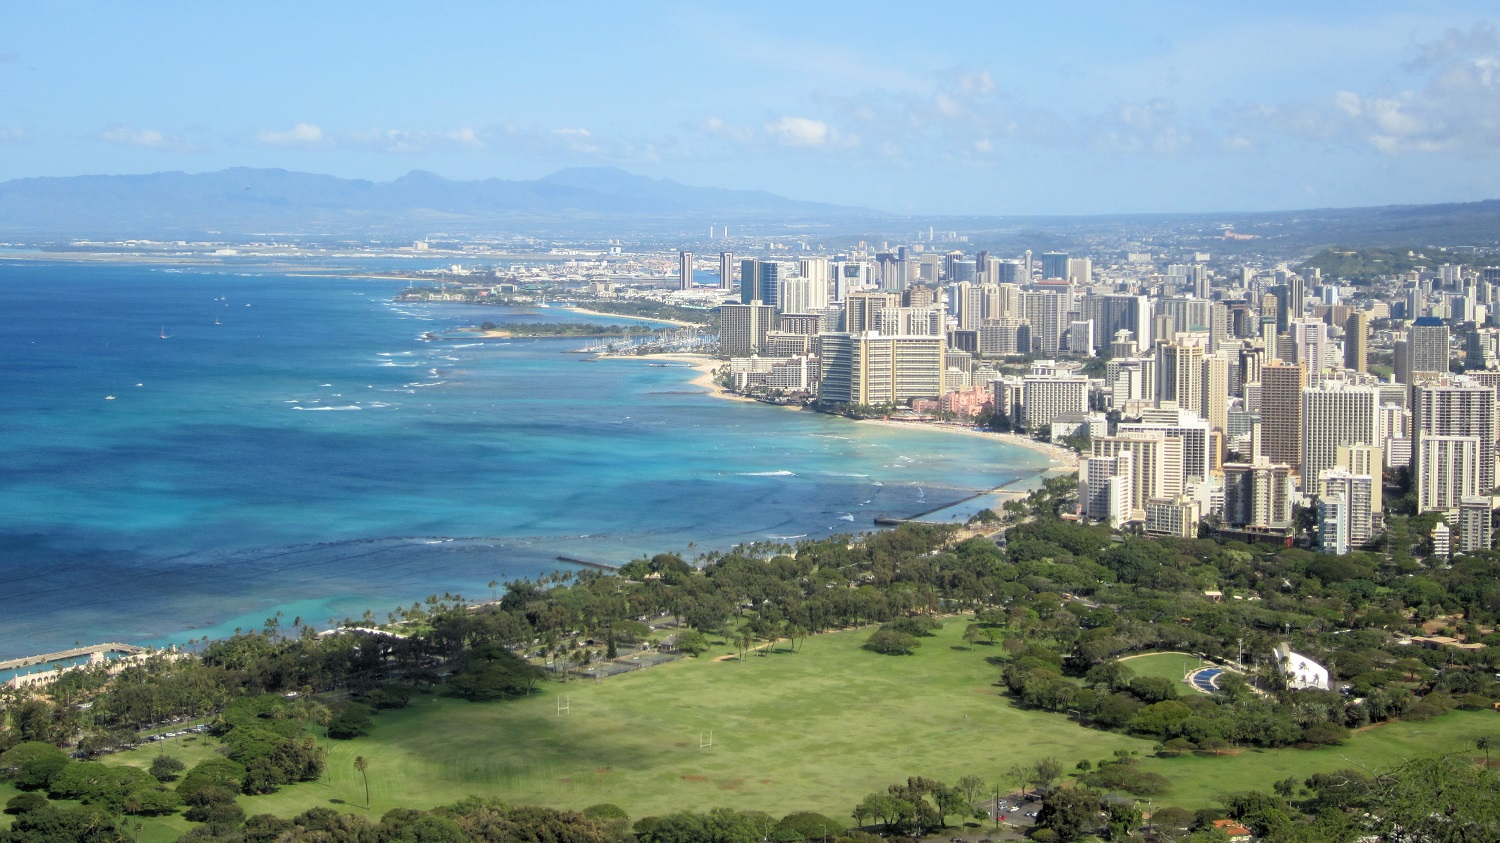 Hawaii's Public Utilities Commission rejected NextEra's bid to takeover HECO based on questionable benefits to ratepayers. Source: Flickr